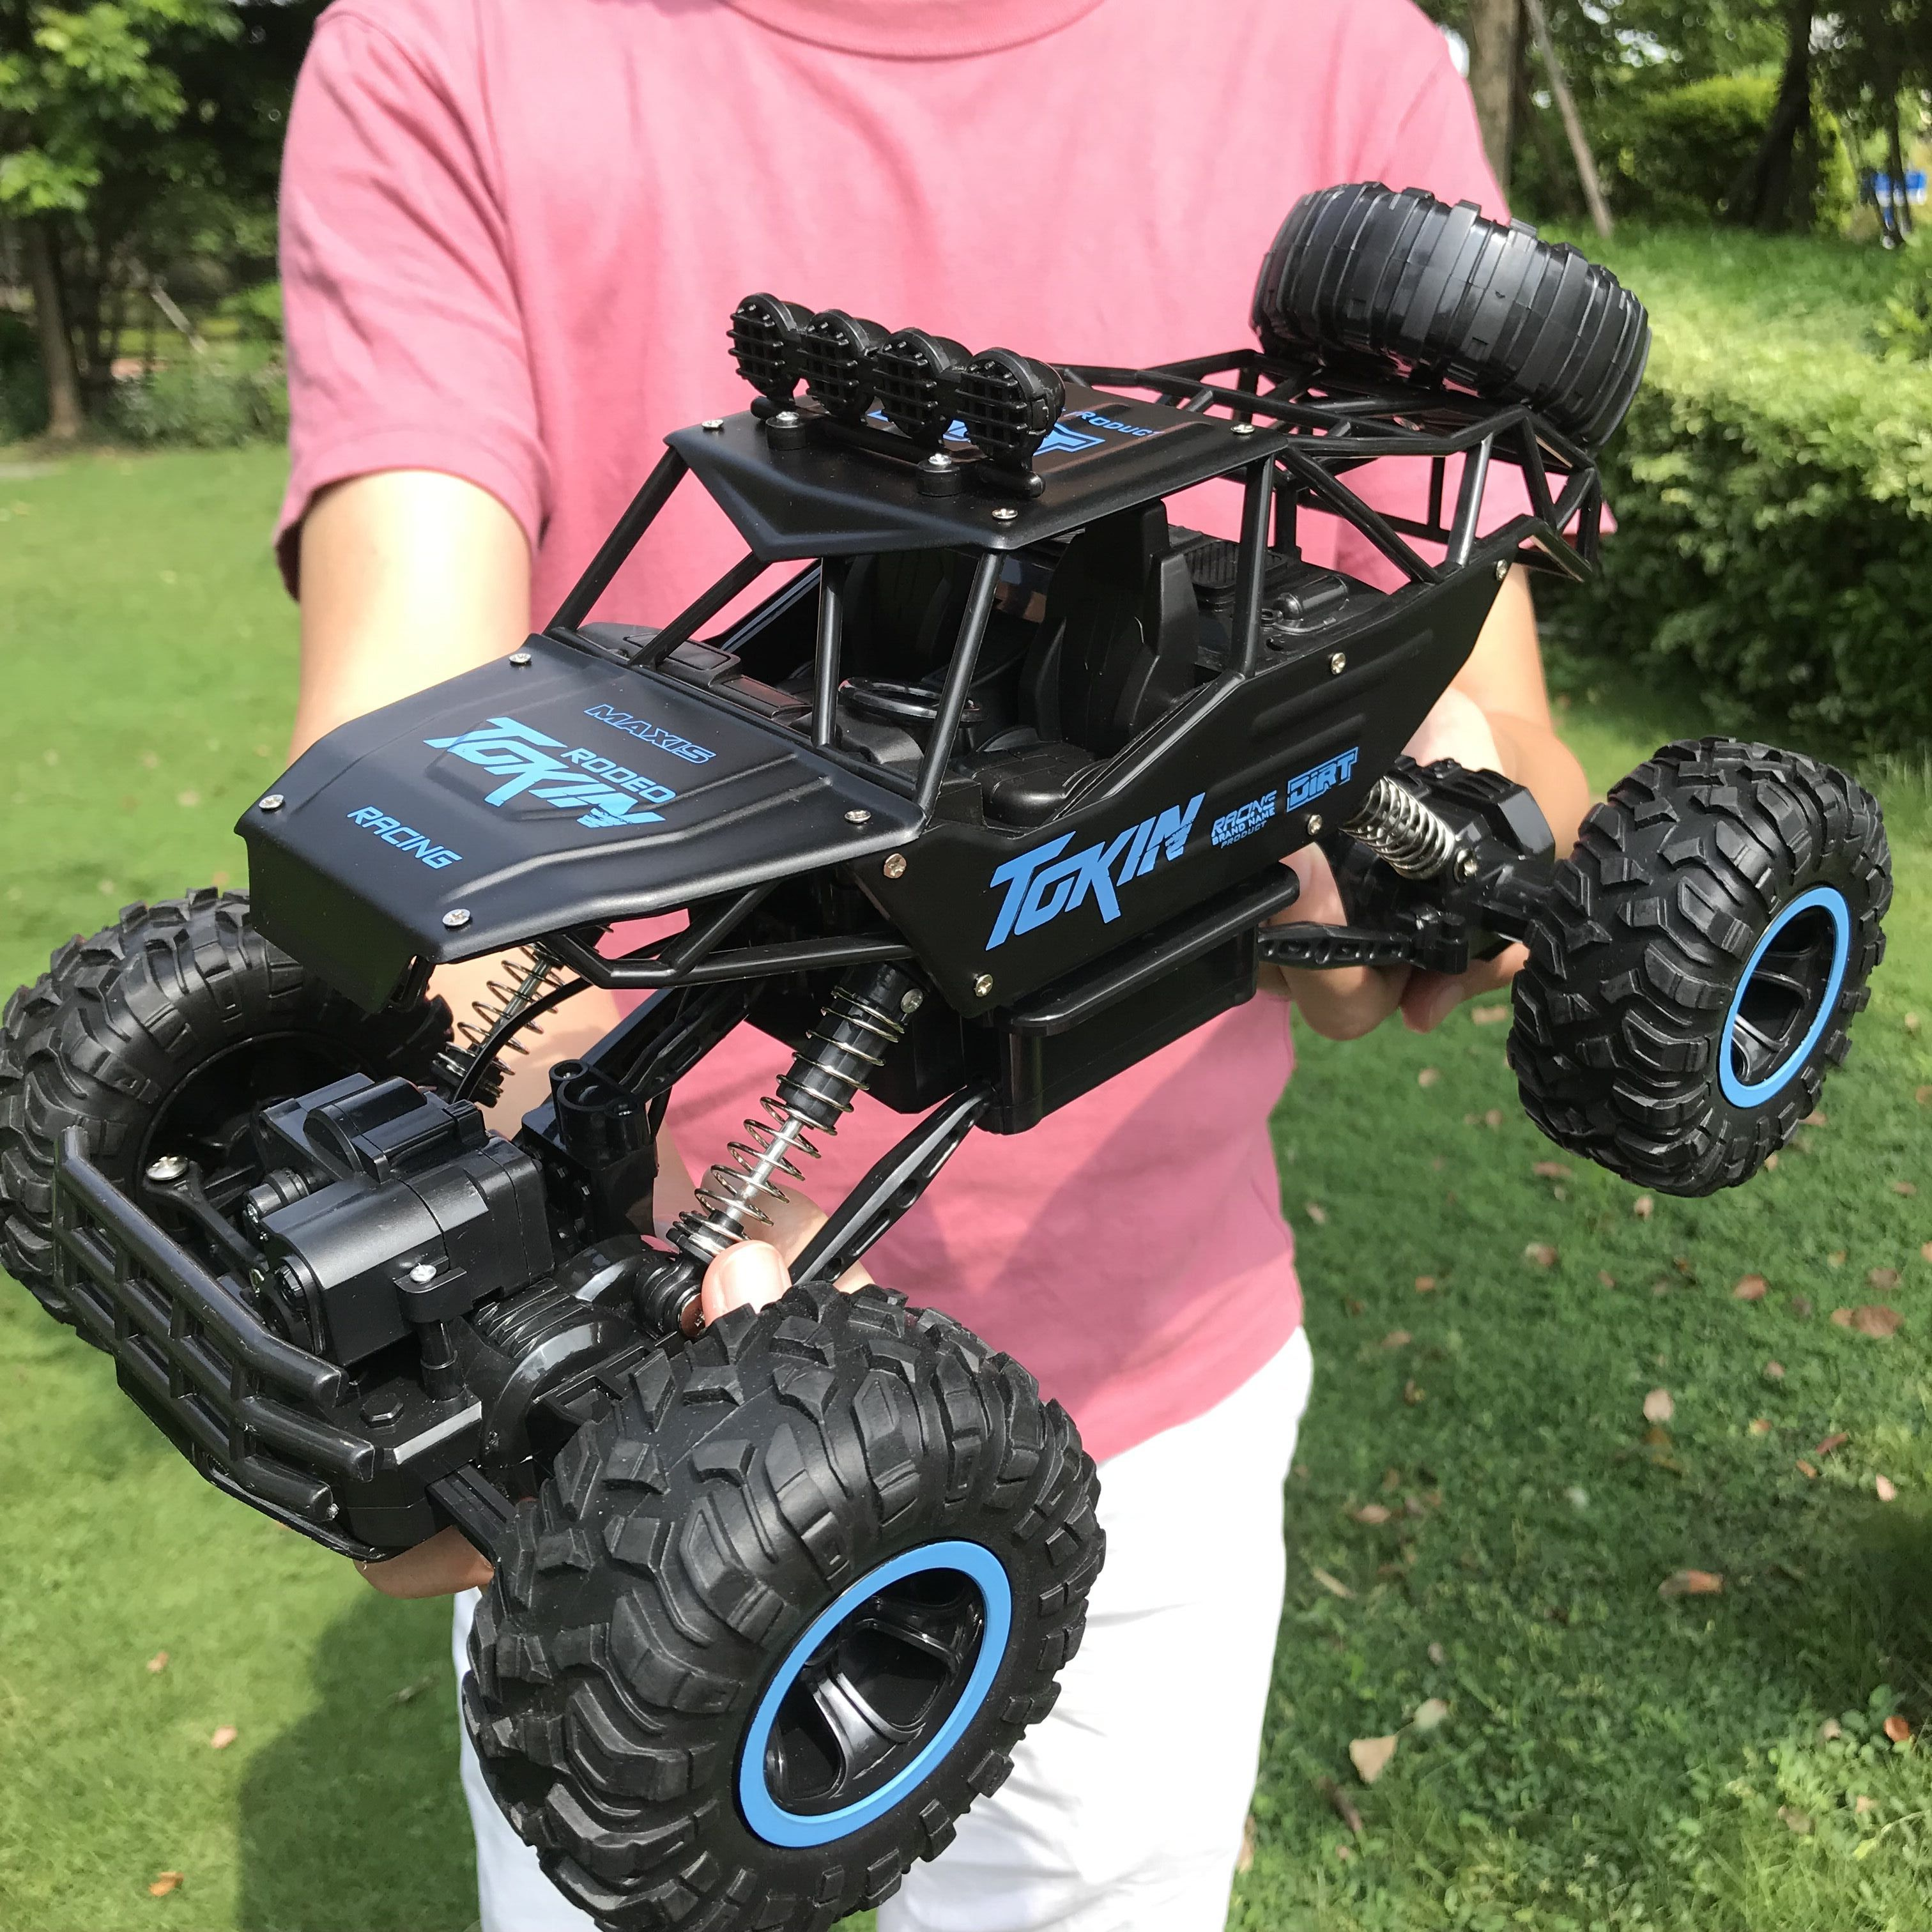 8860 Flytec 15in 37cm Big Size RC Monster Truck Car Climbing Car 4WD Off Road Vehicle Conquering All Terrain RC Toy Car For Kids